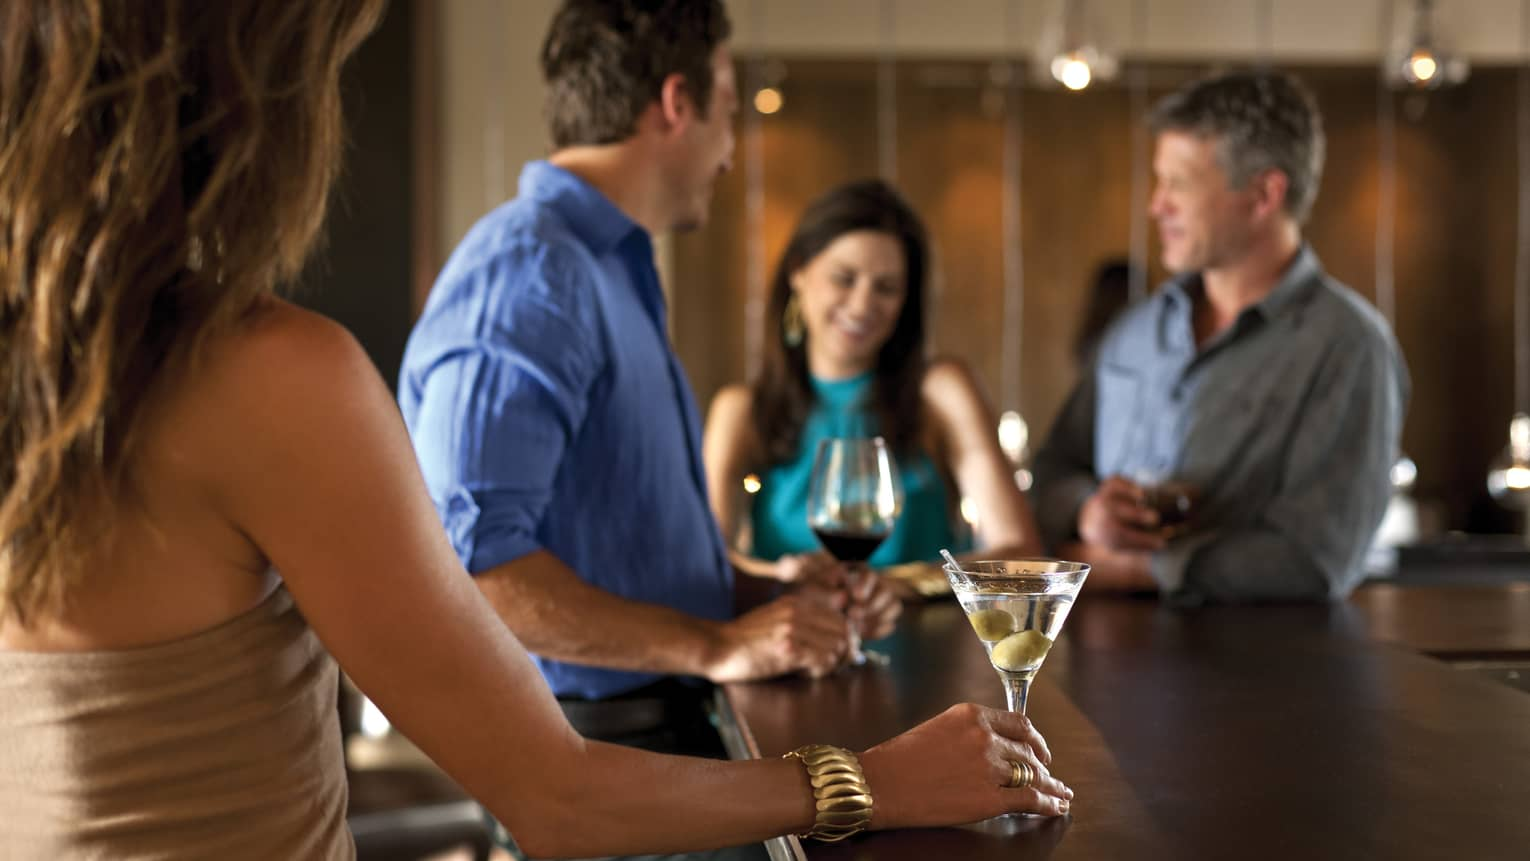 Woman holds martini glass with olives at bar near people with wine